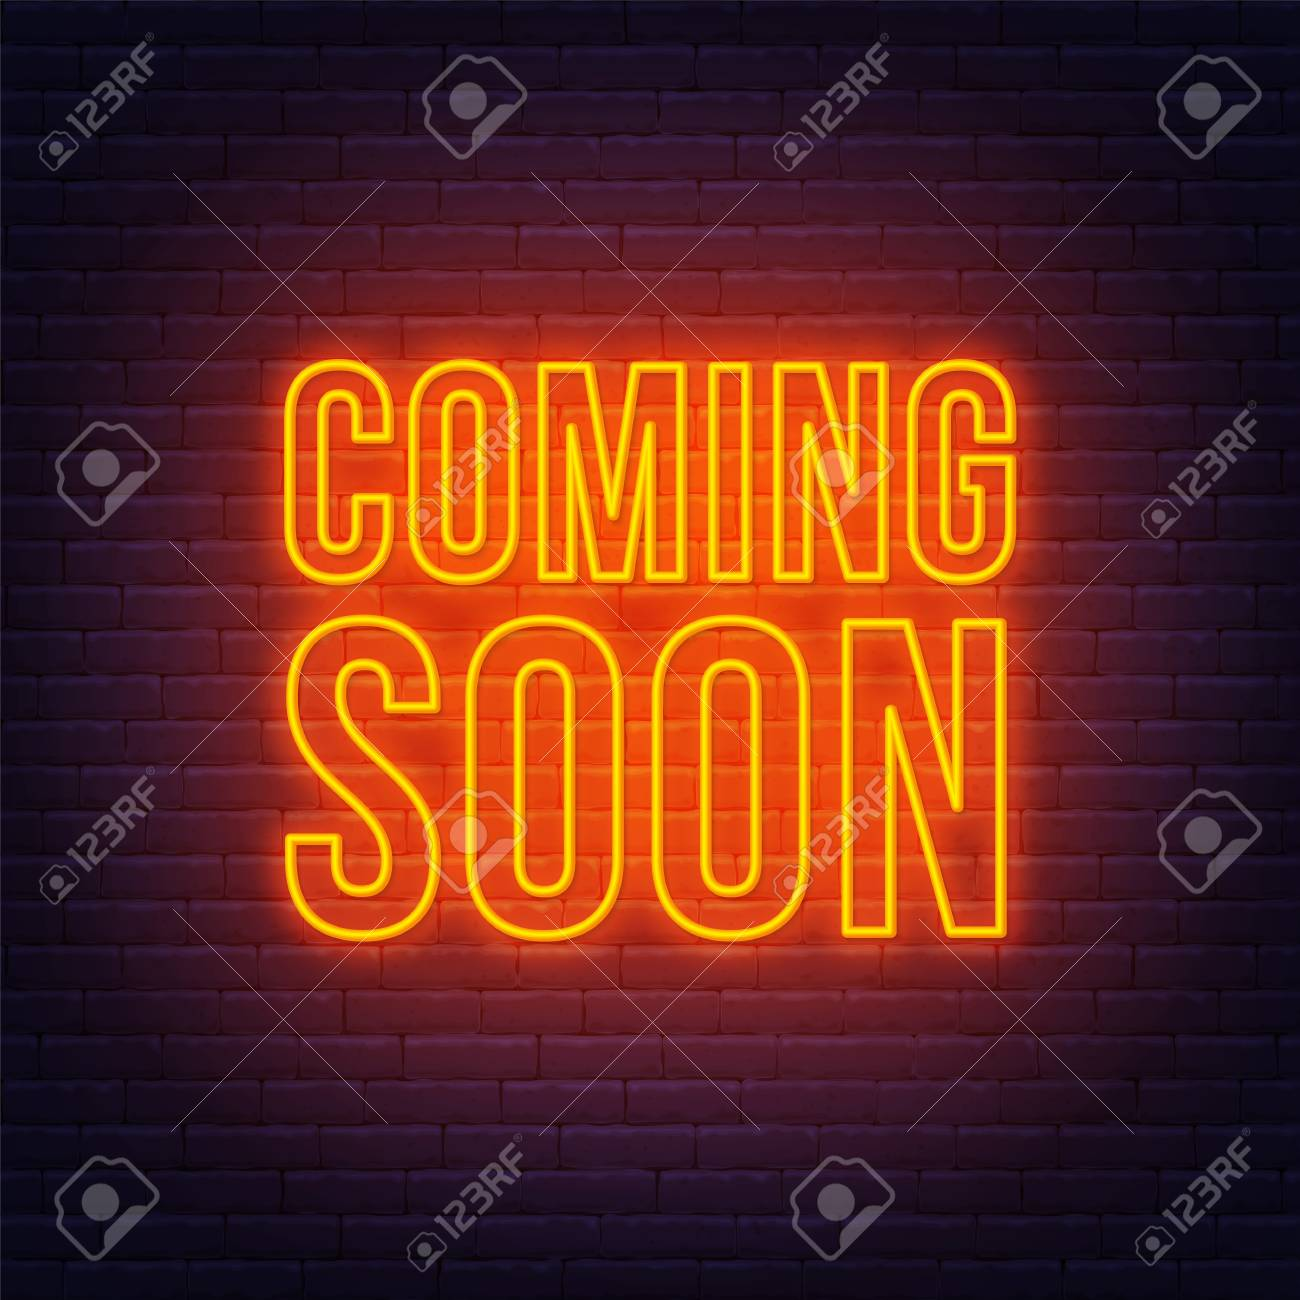 Coming Soon Neon Sign On A Brick Wall Background Royalty Free Cliparts Vectors And Stock Illustration Image 125521489